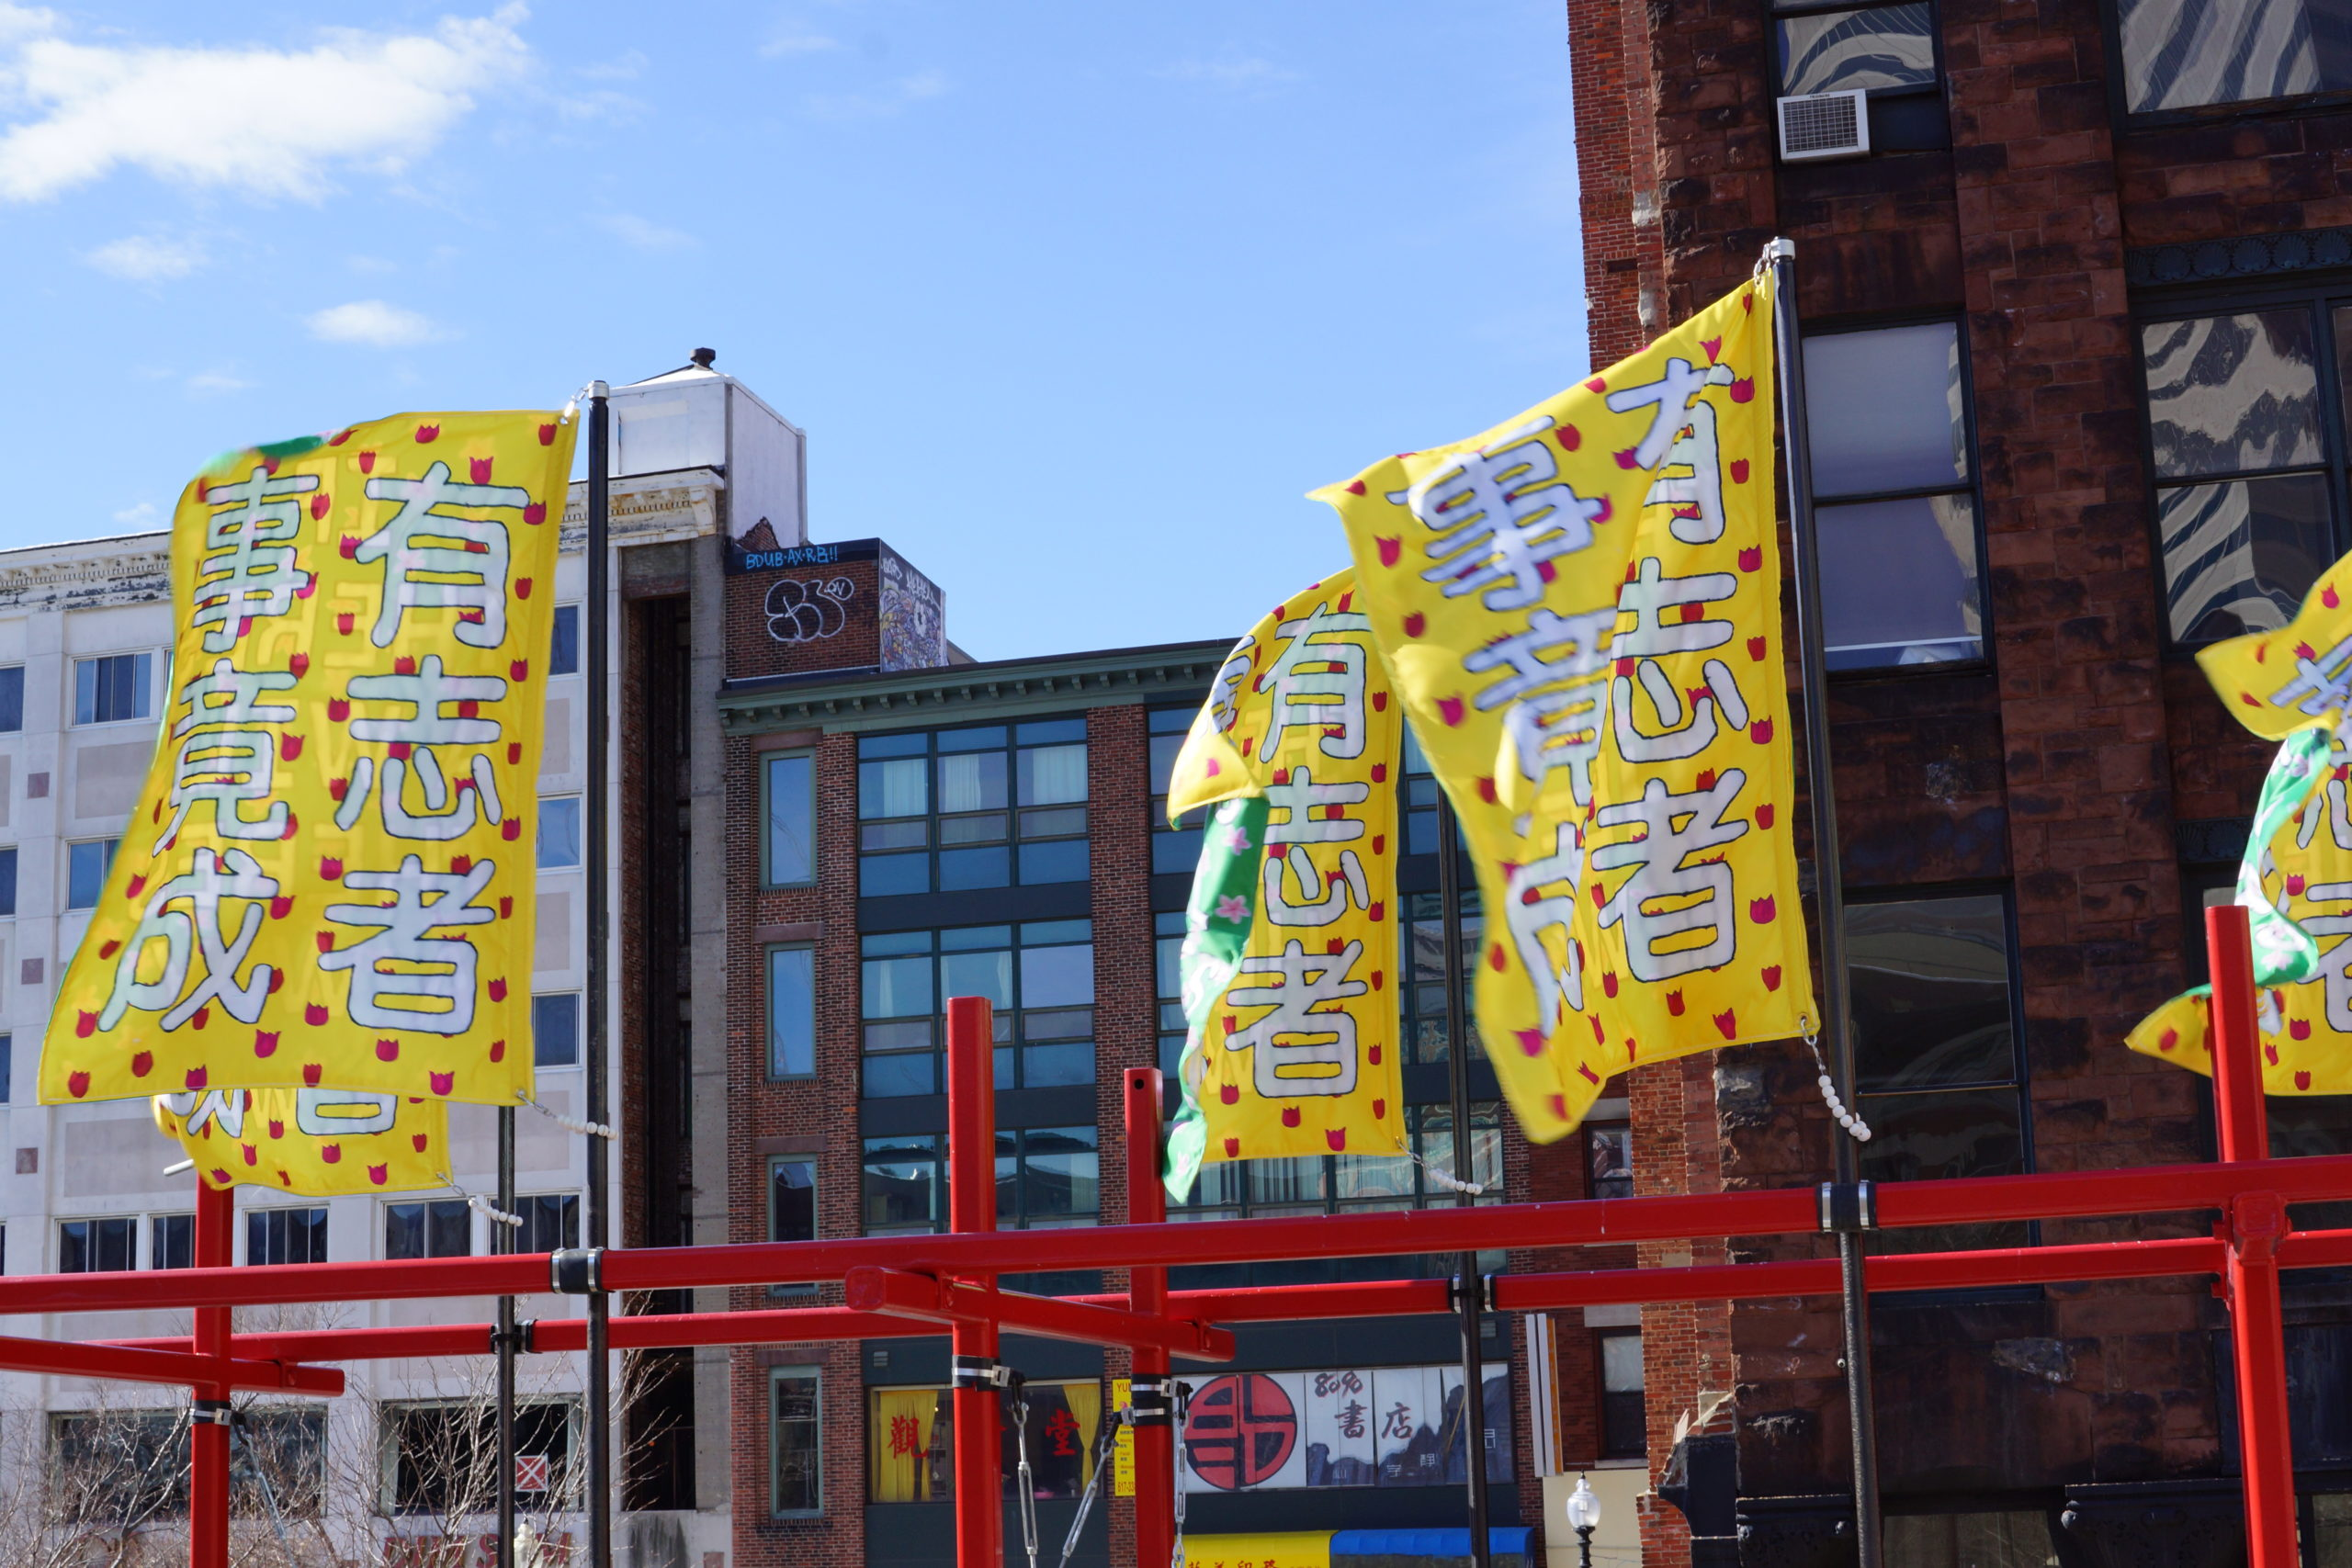 Four rectangular banners billow in the wind at the top of a red steel structure. Large white Chinese characters on the banners reads